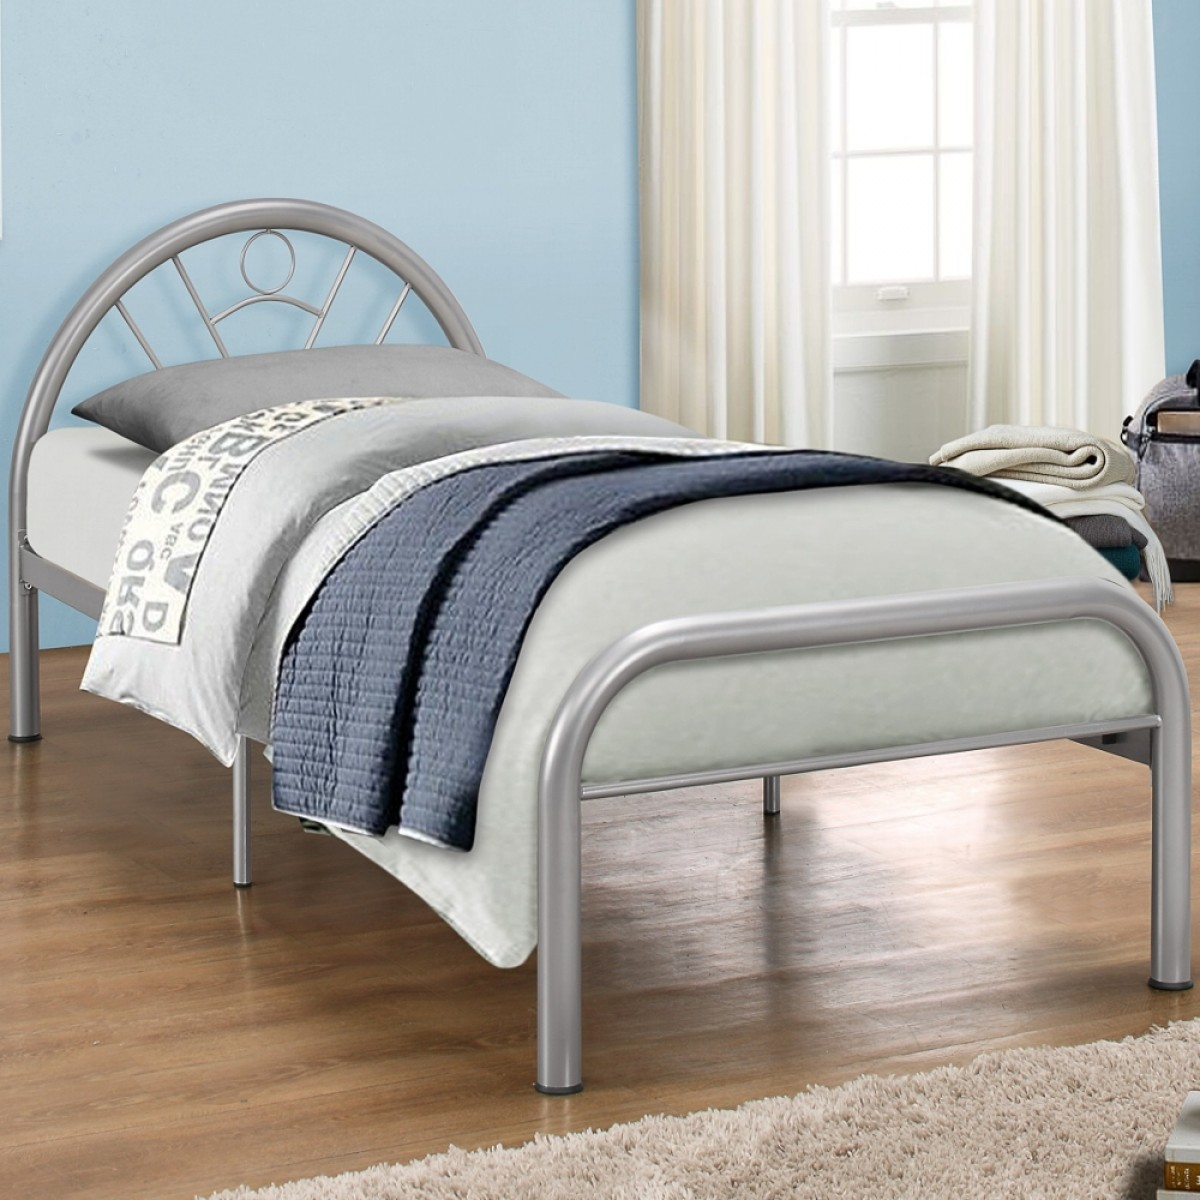 Solo Silver Finish Metal Bed